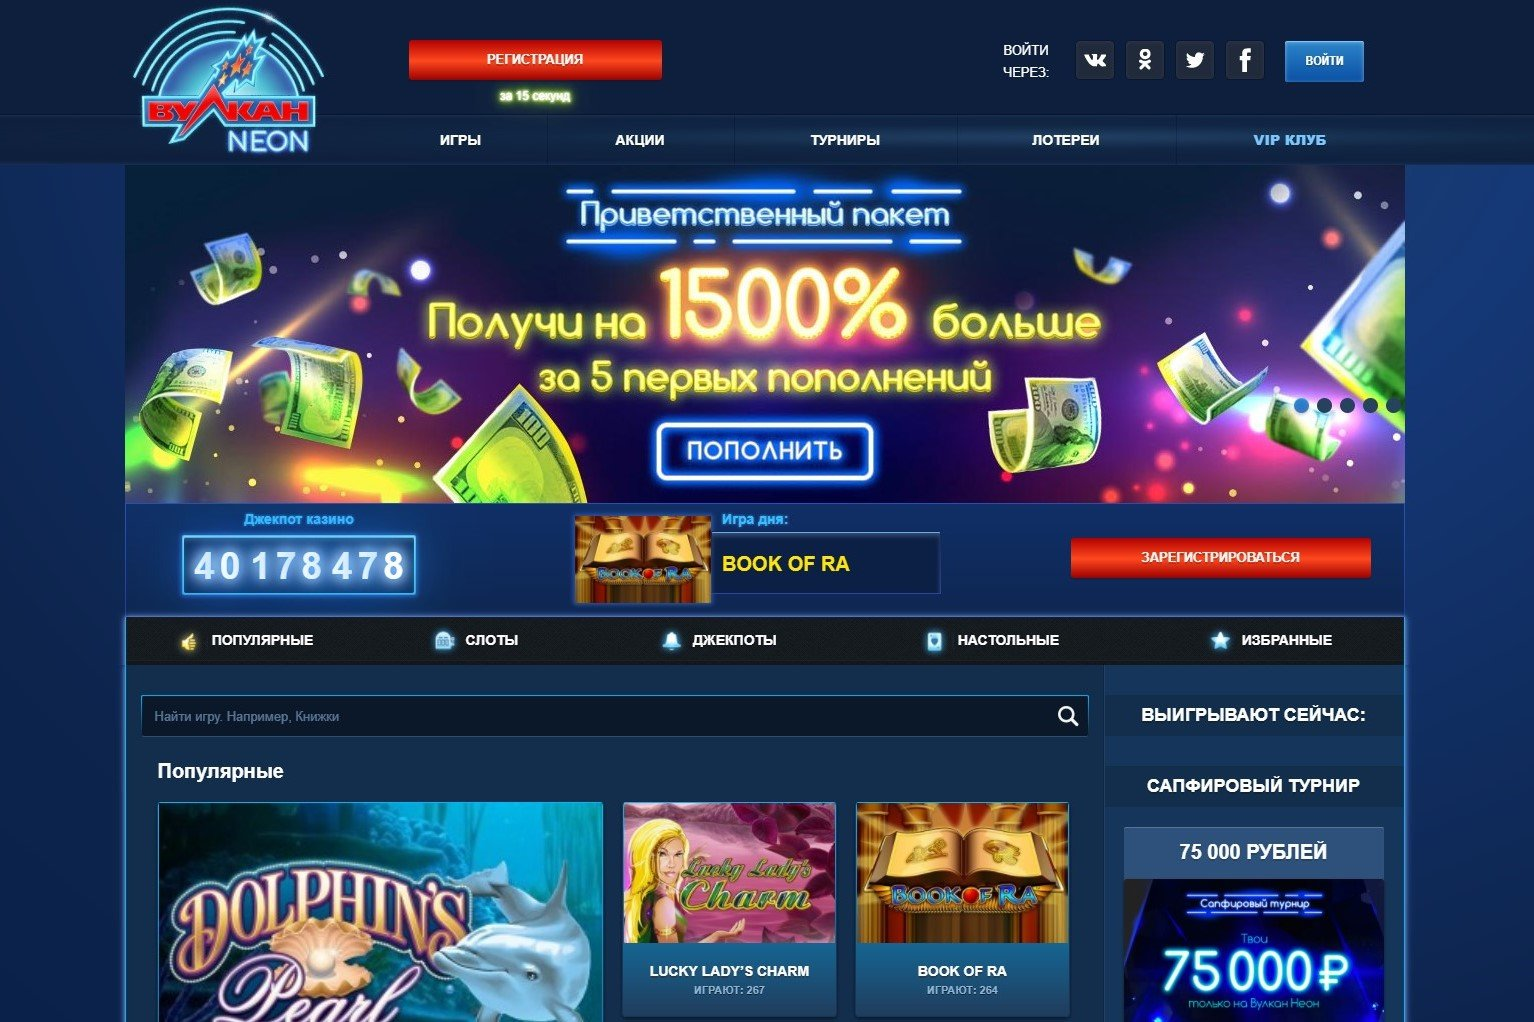 Freeroll pokerstars расписание password